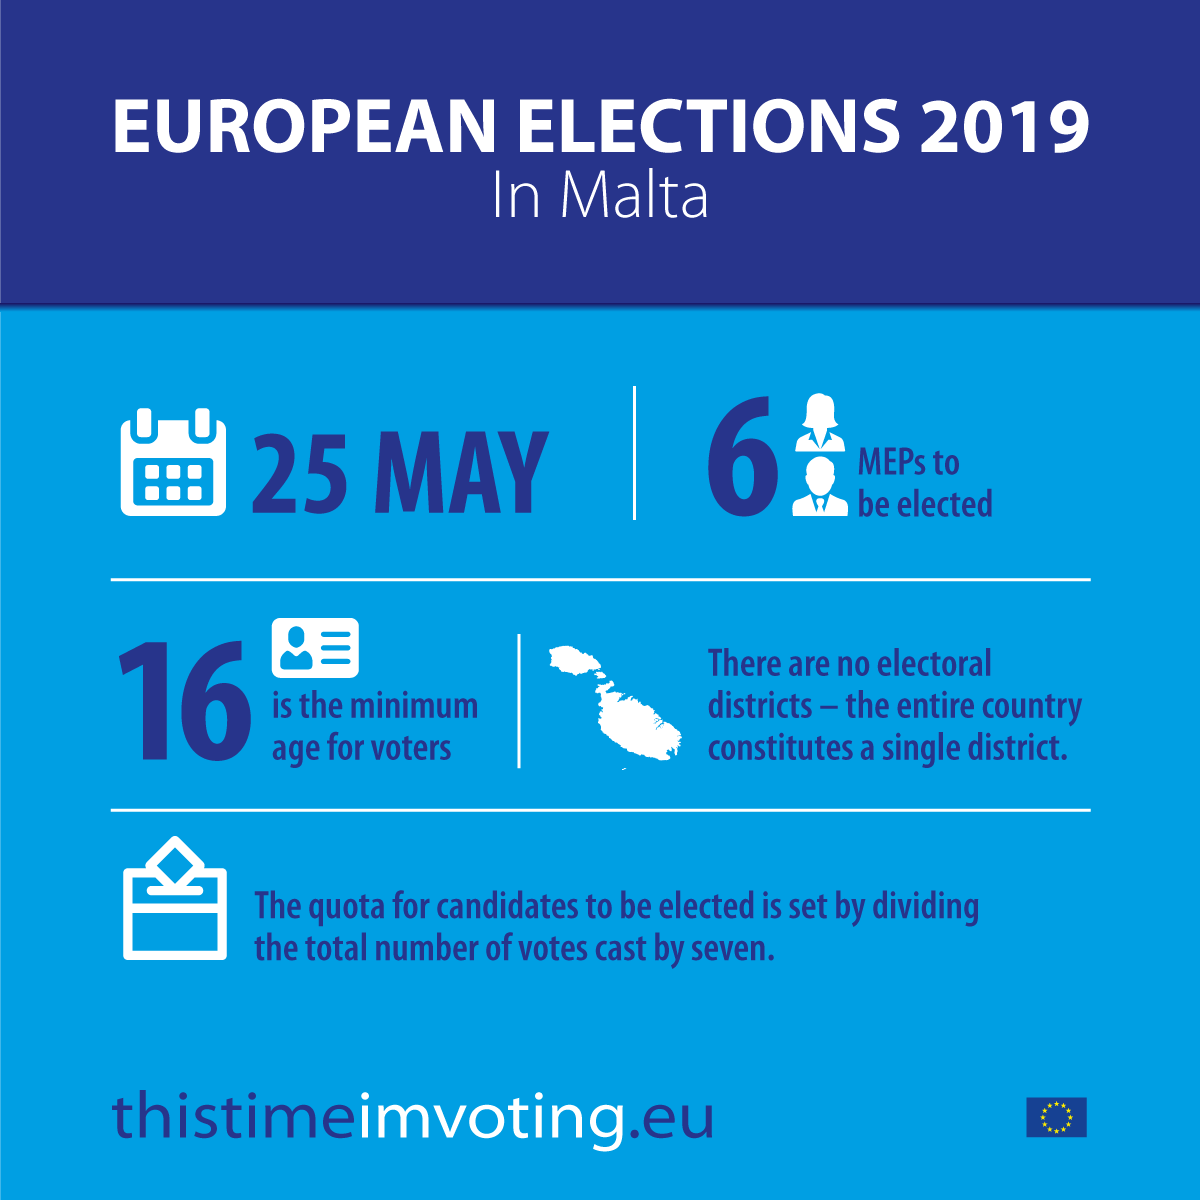 #EUElections2019: voting in Malta takes place on Saturday 25 May. Everything you need to know on how to vote can be found here eptwitter.eu/qhAs